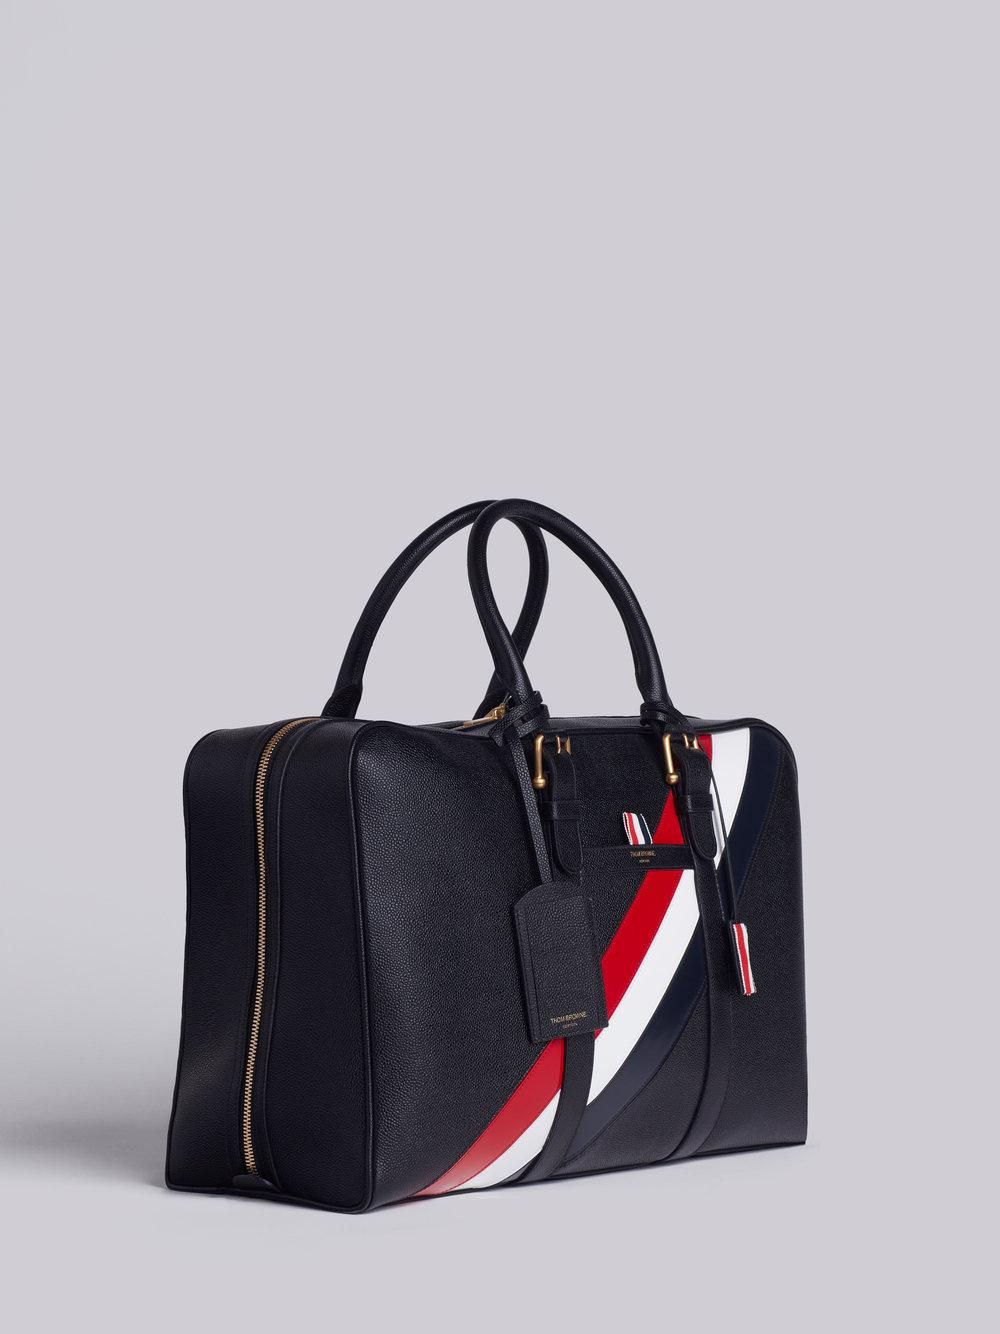 8d24c84c460 Lyst - Thom Browne Medium Holdall With Red, White And Blue Diagonal Stripe  In Pebble Grain & Calf Leather in Black for Men